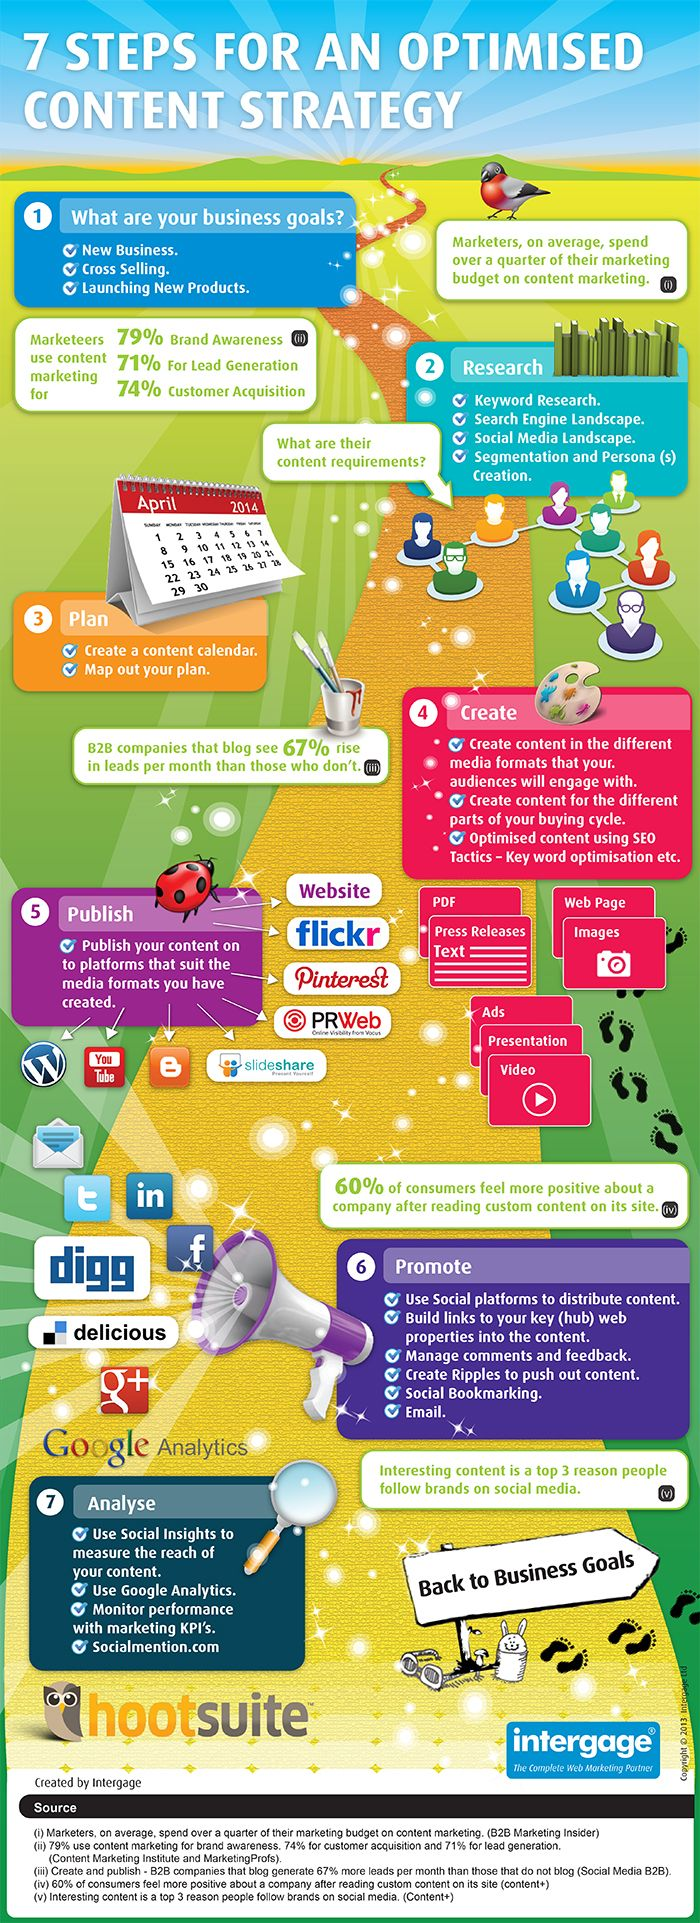 7 Steps for an Optimised Content Marketing Strategy #infographic